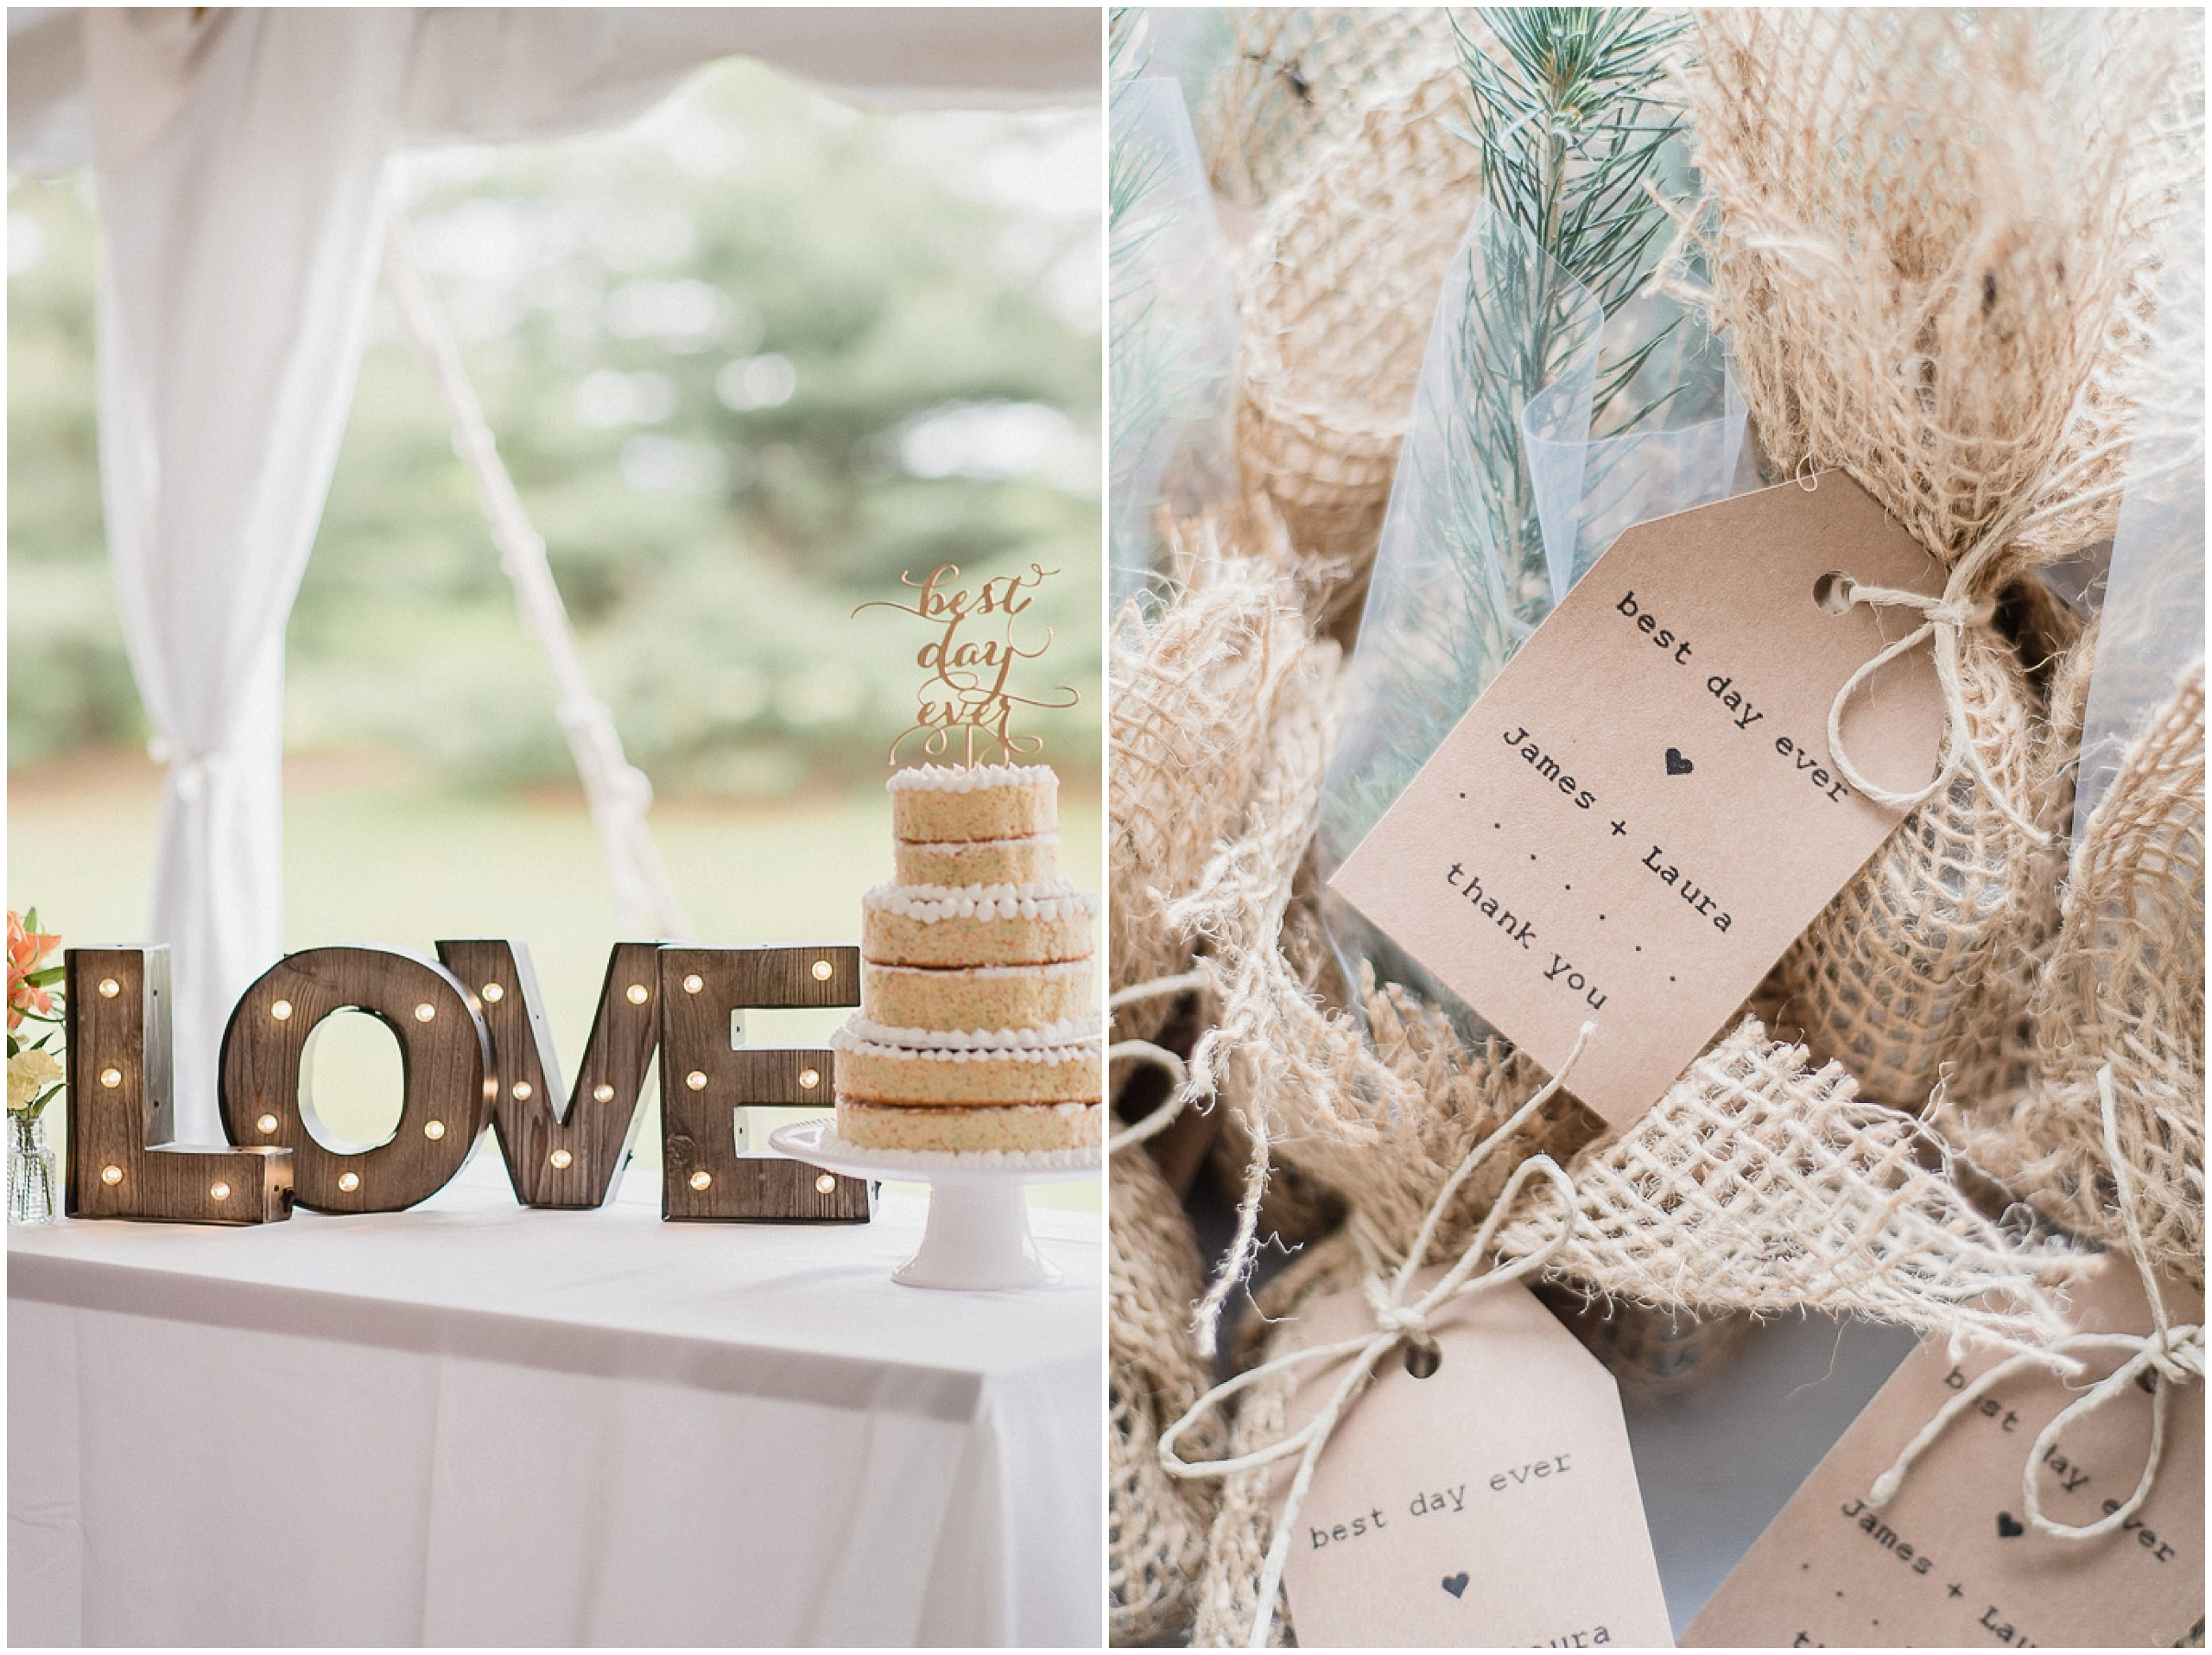 Rustic Details: Light Up Love Sign, Naked Cake and Take Home Tree Sapling Thank You gifts at this Knollwood Golf Course Wedding in Hamilton, Ontario by Jenn Kavanagh Photography